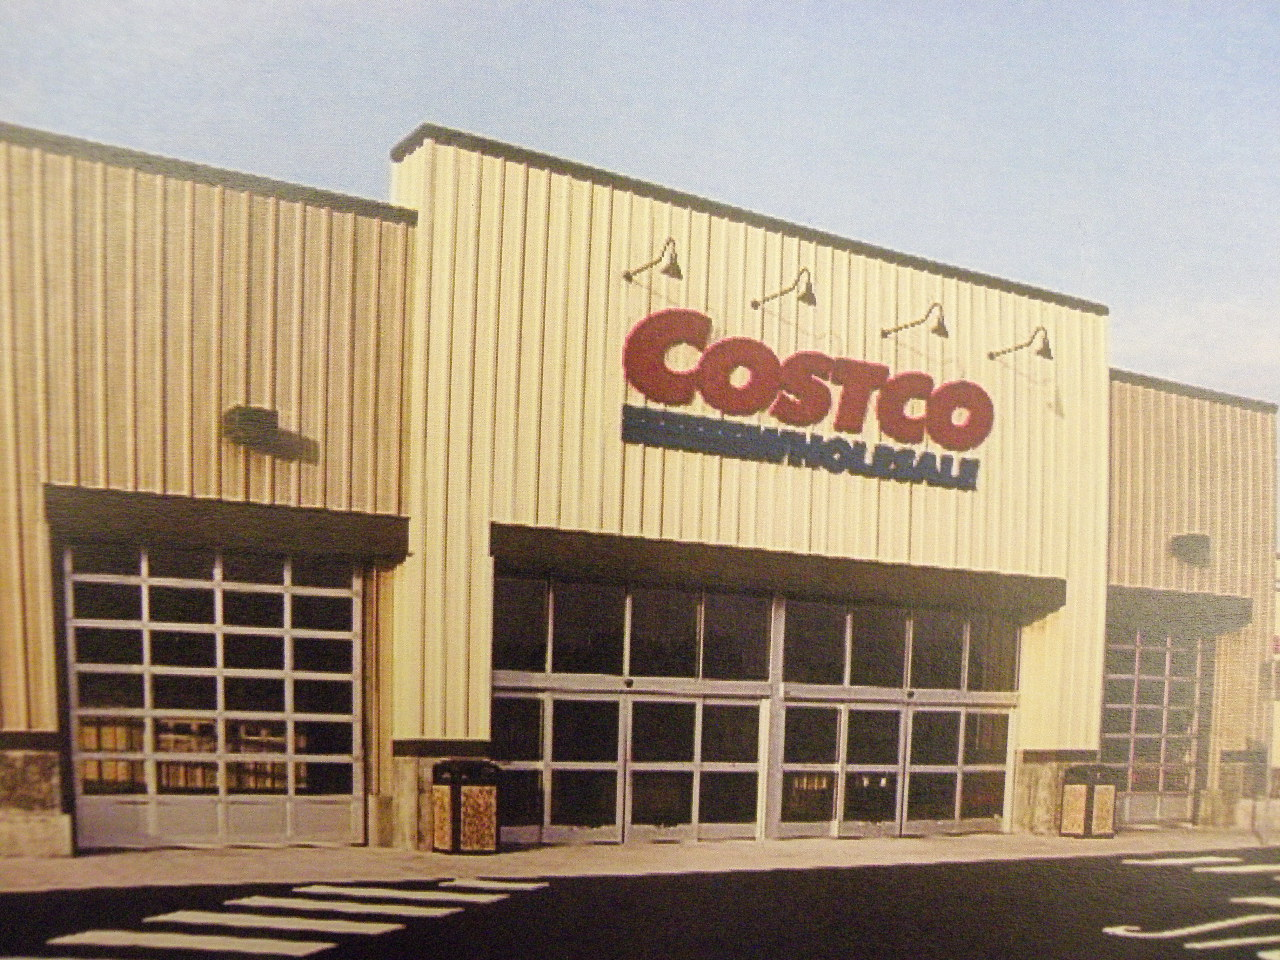 first look the new costco flemington raritan nj news tapinto this is part of the costco design that township officials have approved credits tap into flemington raritan